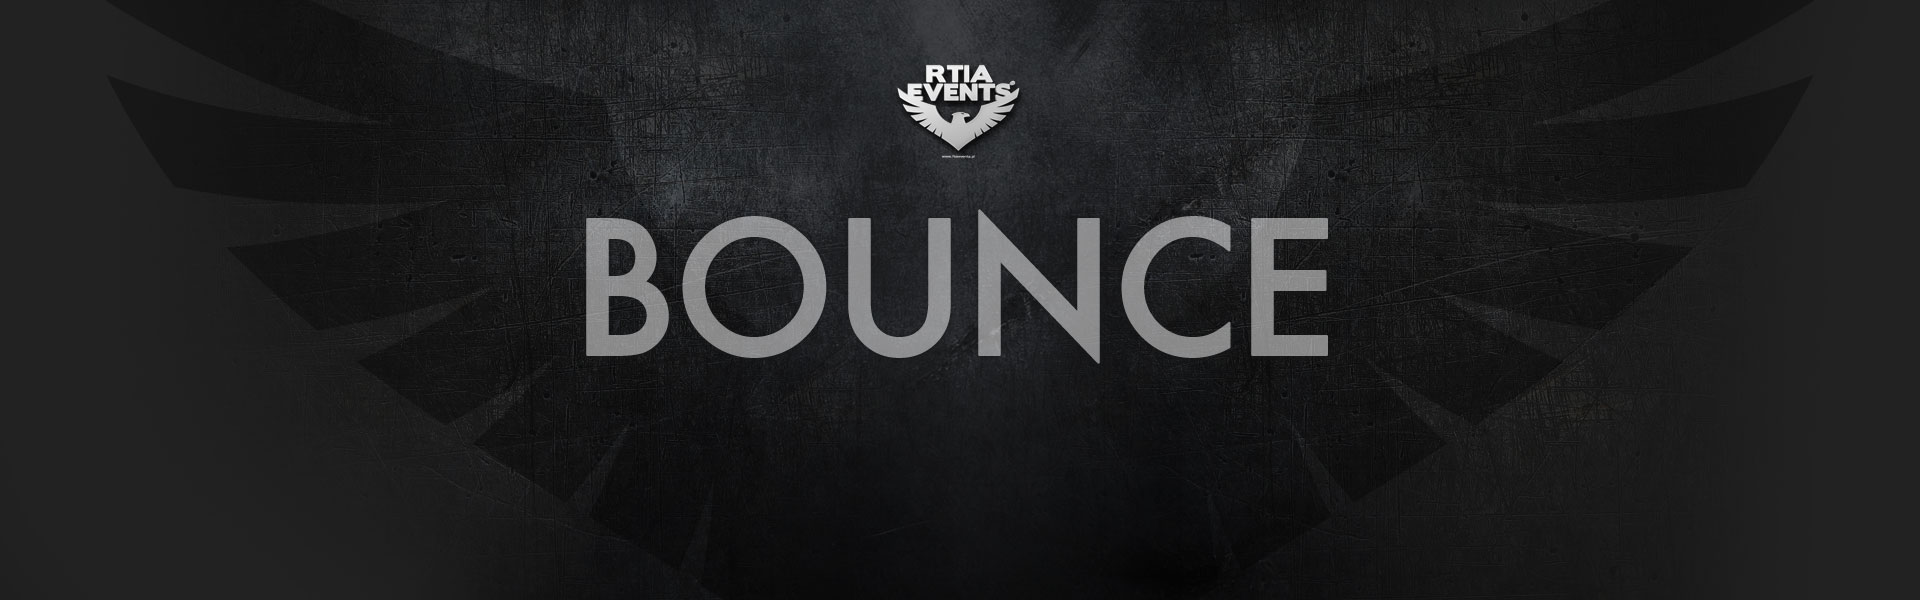 http://www.rtiaevents.pl/genres/bounce-2.jpg